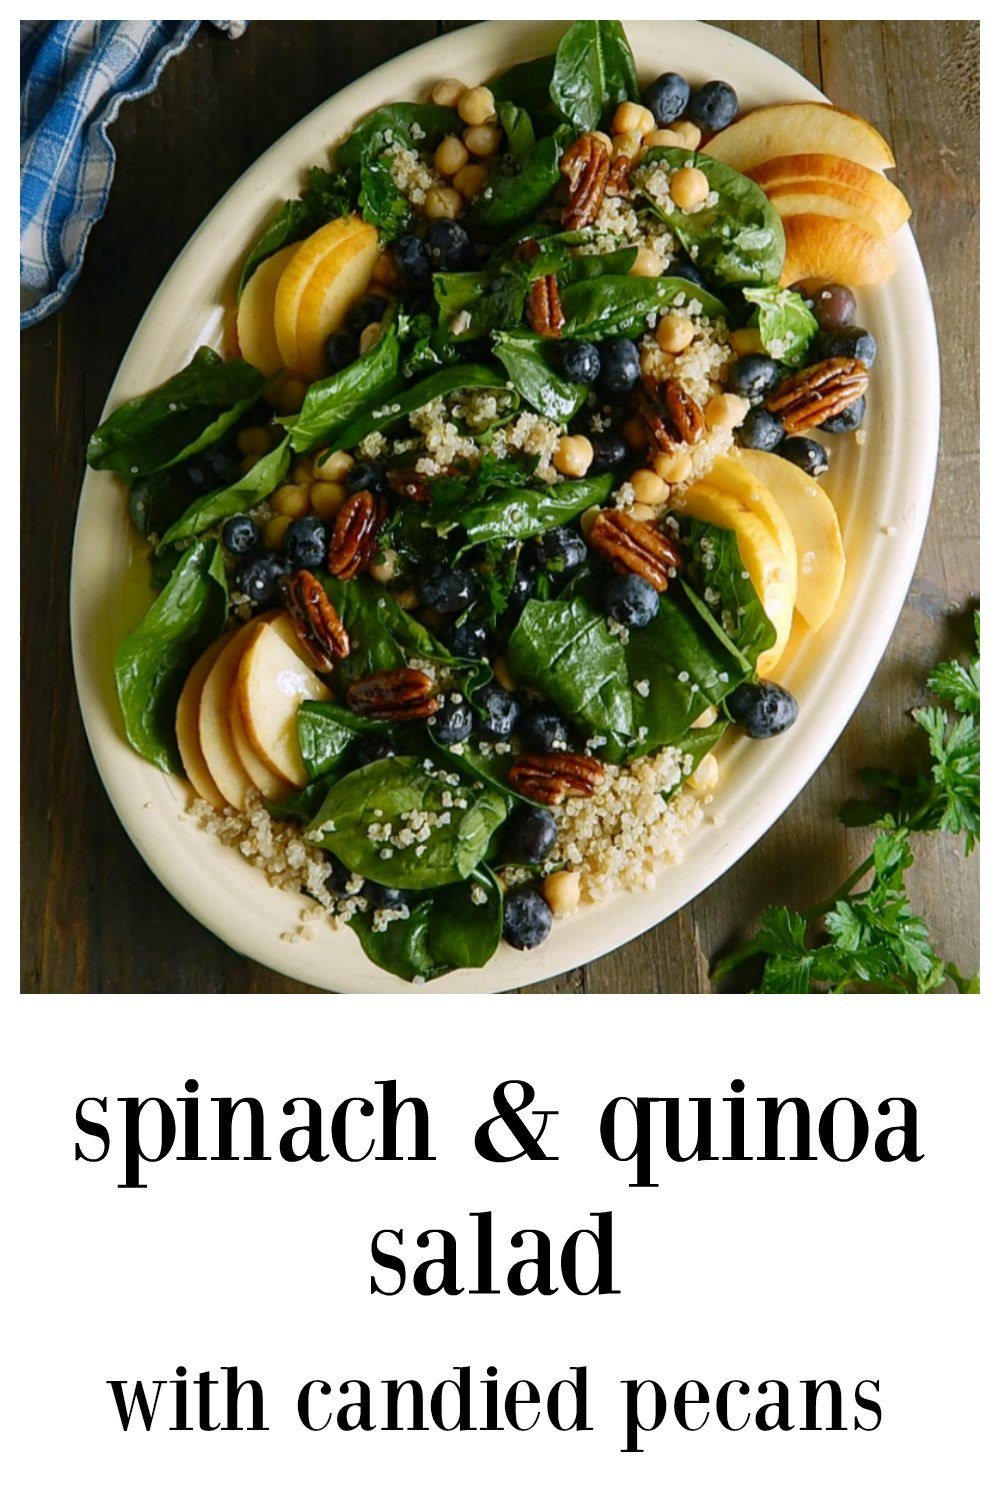 Spinach Quinoa Salad with Candied Pecans is one of those salads you'll just want to keep eating and eating! A combo of sweet, tart, crunchy & chewy! Full of good for you ingredients, spinach, chickpeas, quinoa, apples or pears & blueberries.! The easy candied pecans add a cheffy restaurant touch! #SpinachQuinoaSalad #HealthySpinachSalad #SpinachSalad